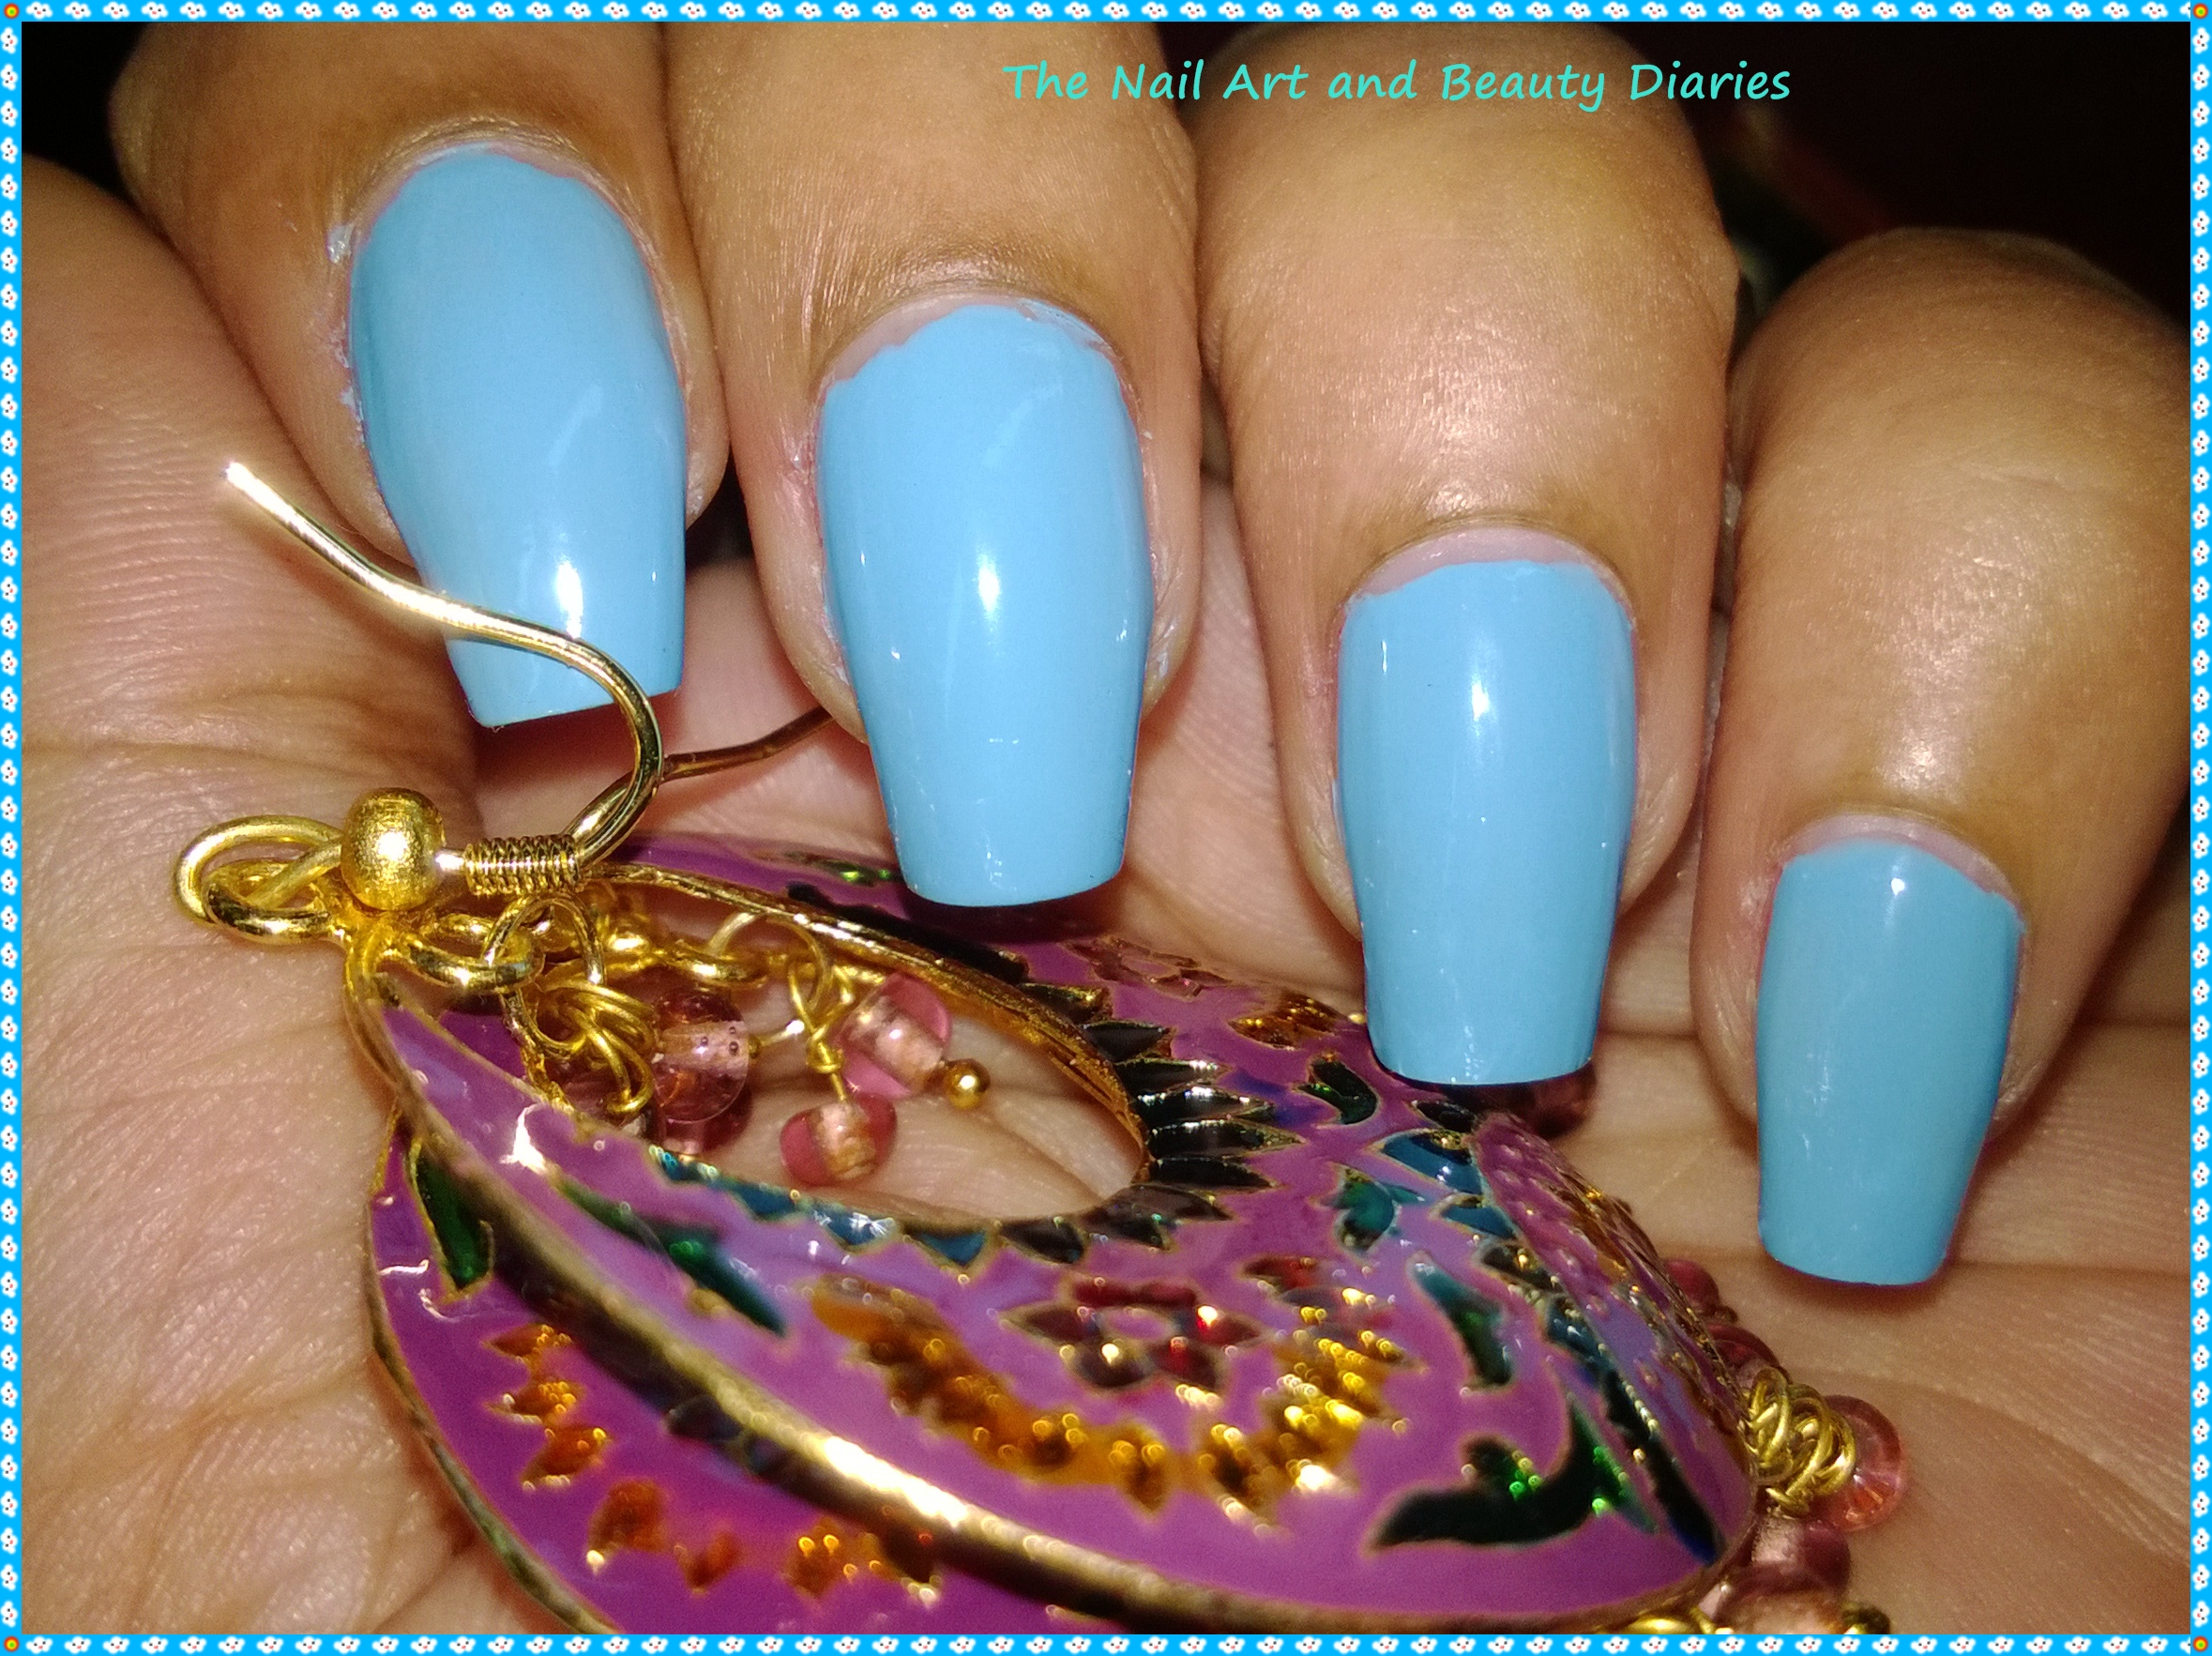 Maybelline Color Show Blue Berry Ice Review | The Nail Art and ...